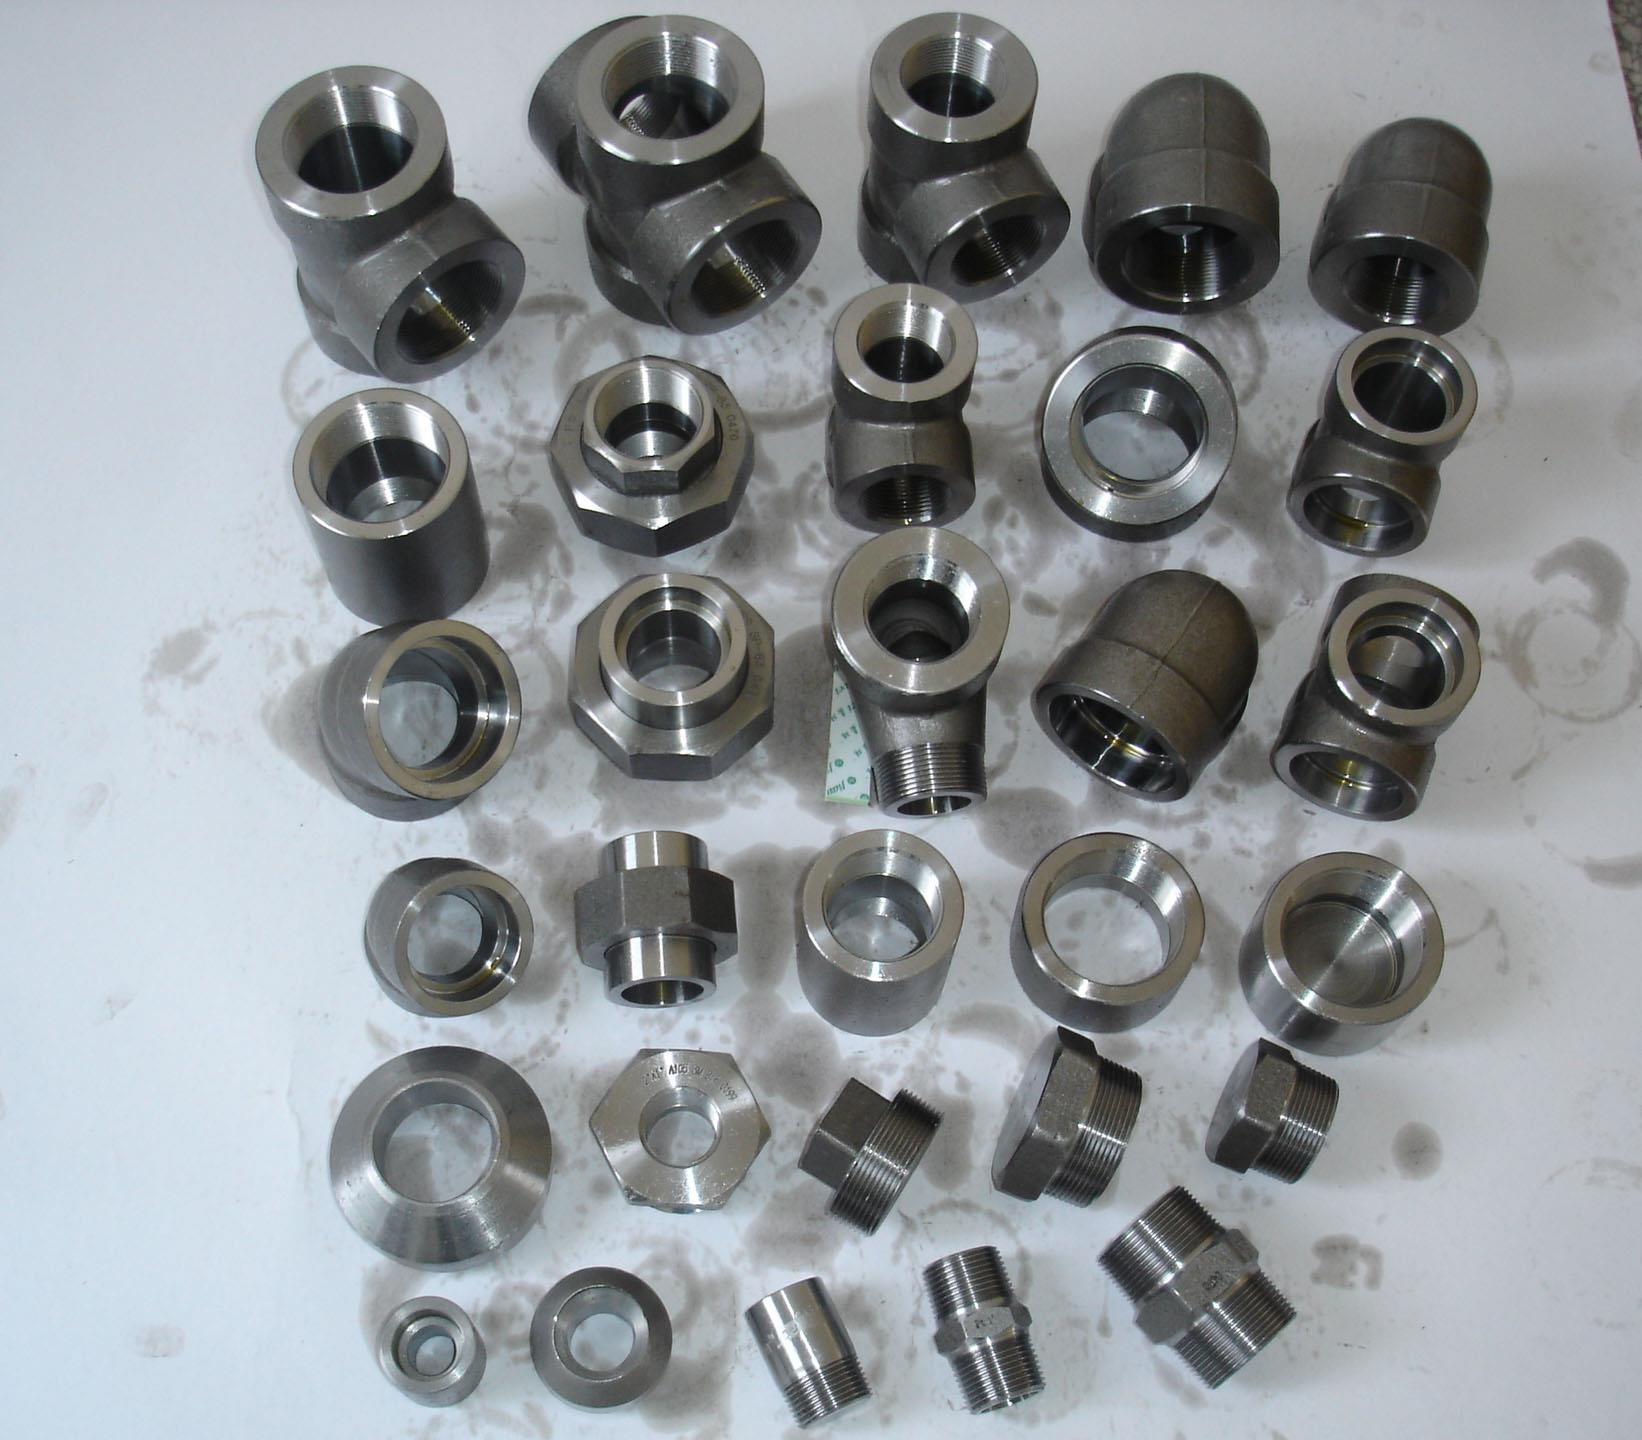 Sell stainless steel fitting from indonesia by toko